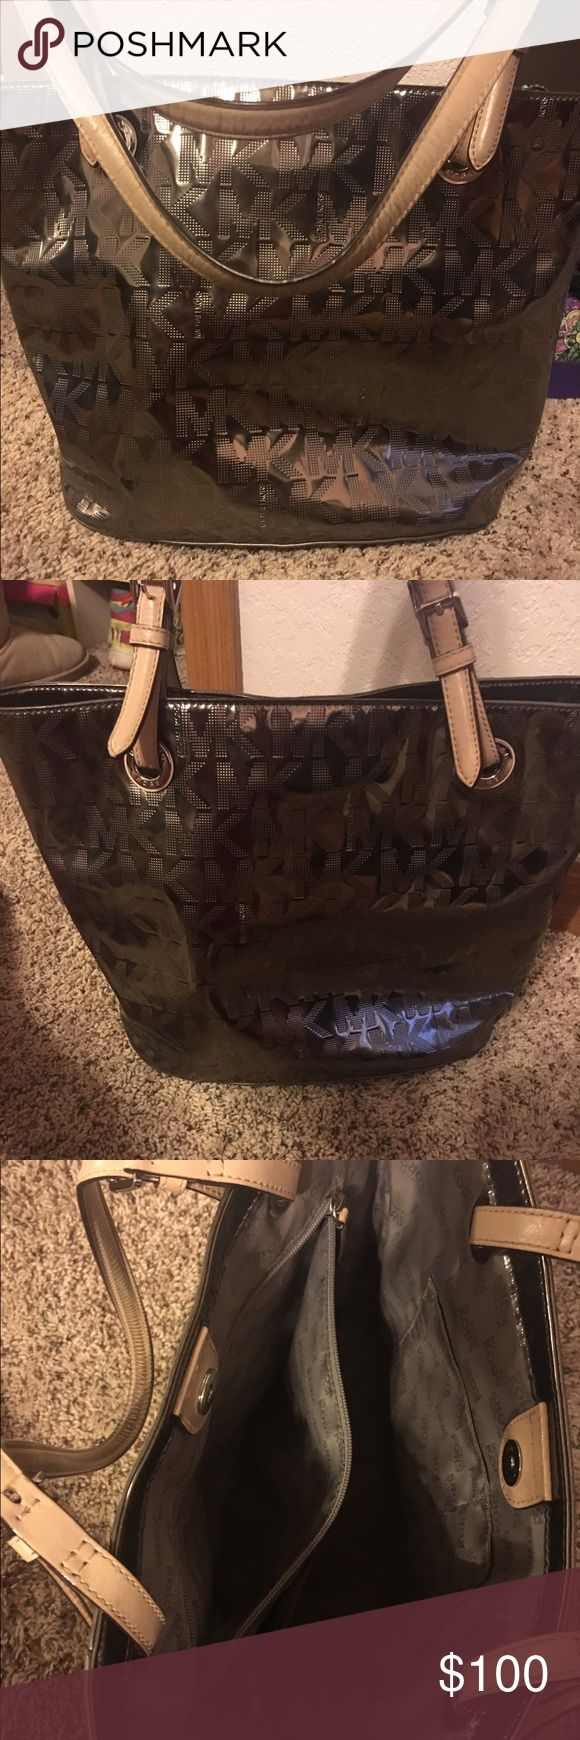 Michael Kors Metallic Handbag Purchased for $195 and have only used occasionally. This bag has been kept in very good condition only showing a slight amount of wear on the handles. Michael Kors Bags Shoulder Bags